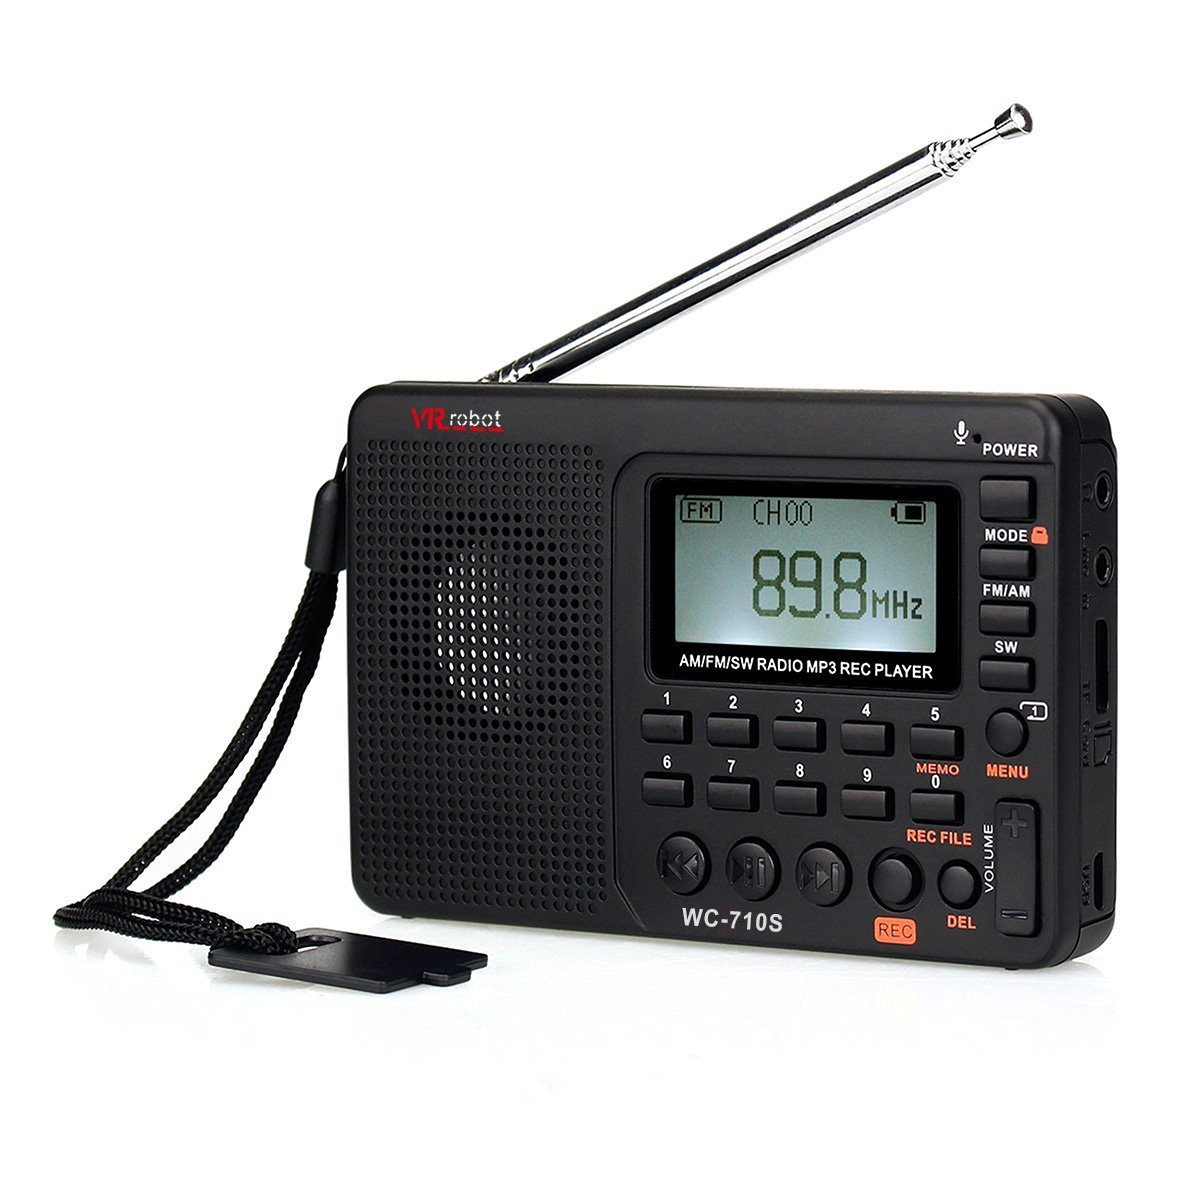 Portable Shortwave AM/FM Stereo Radio with MP3 Player and Sleep Timer